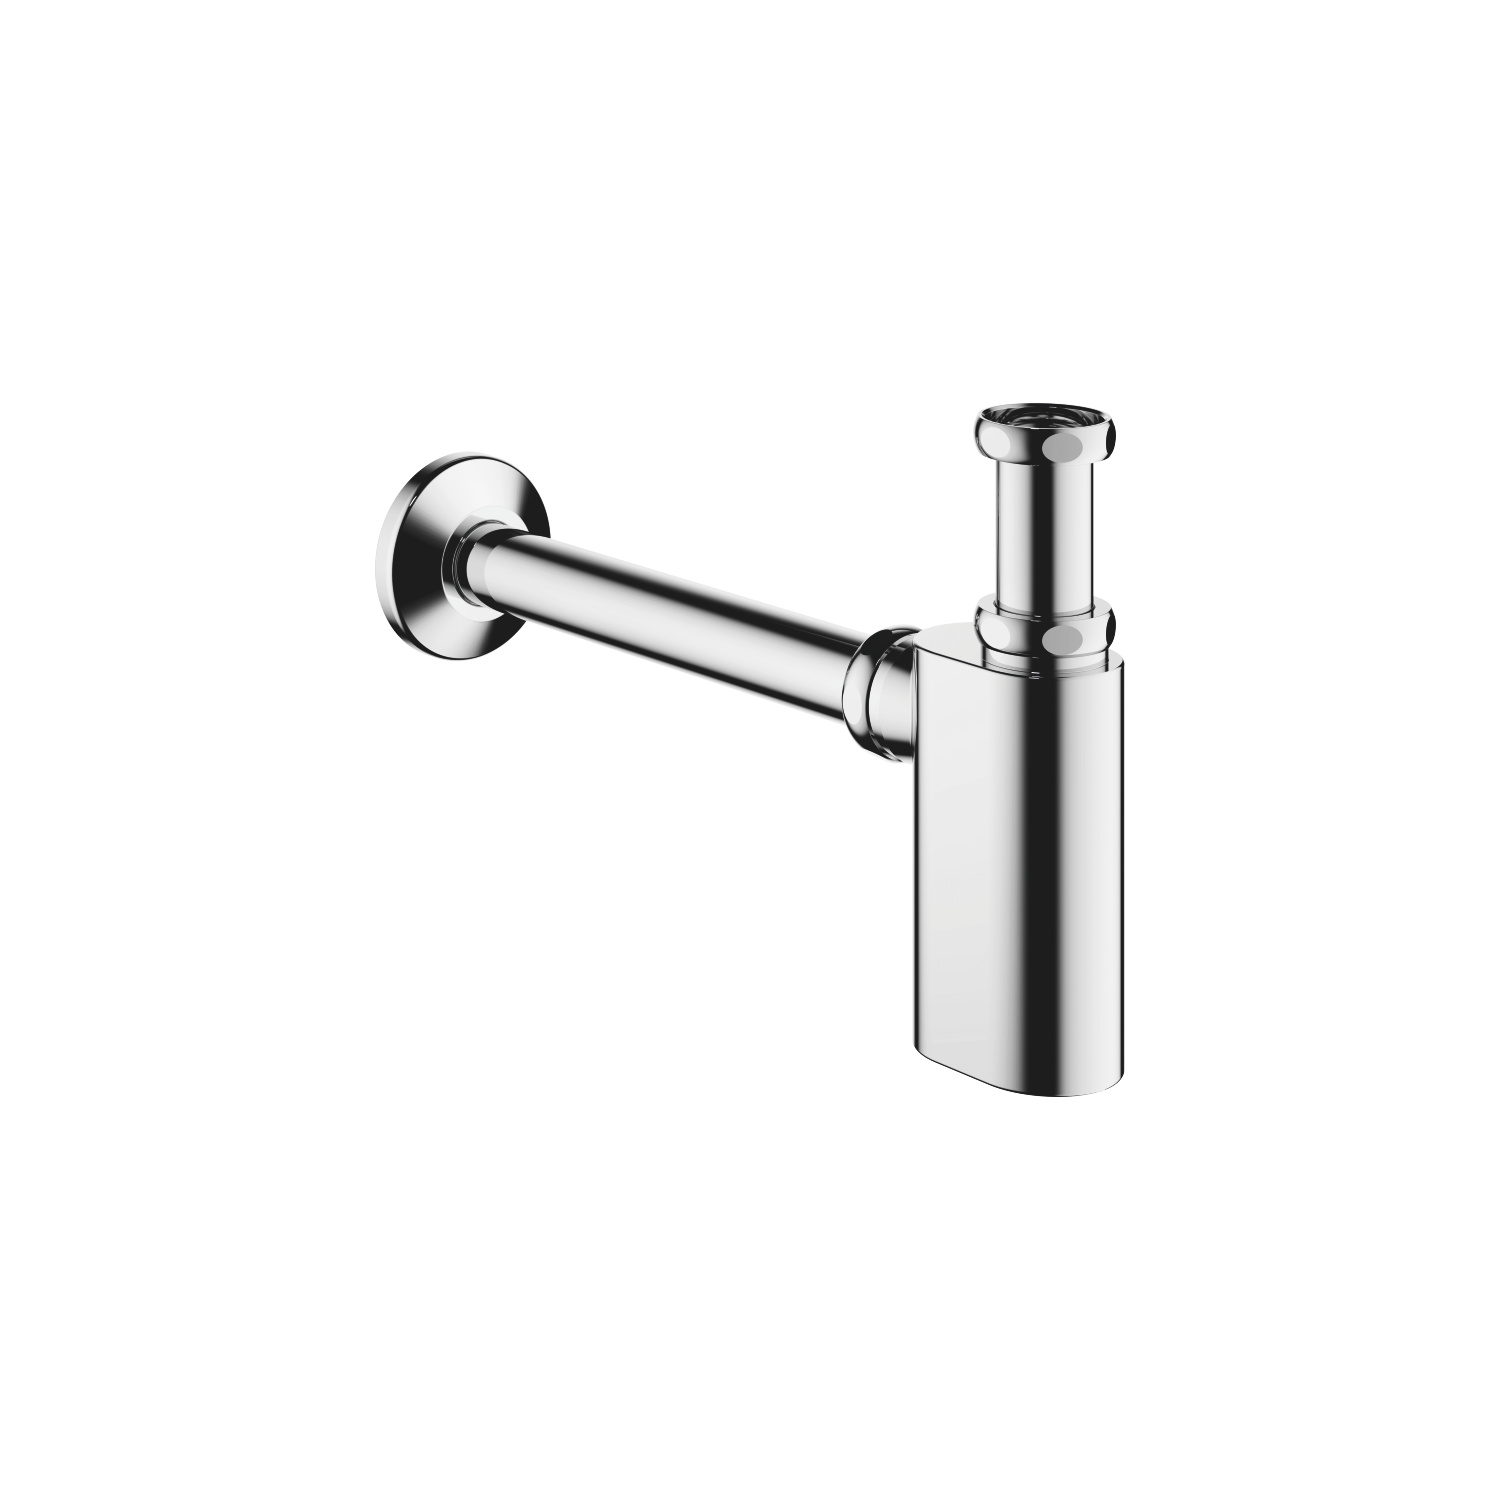 "Siphon for basin 1 1/4"" - polished chrome"